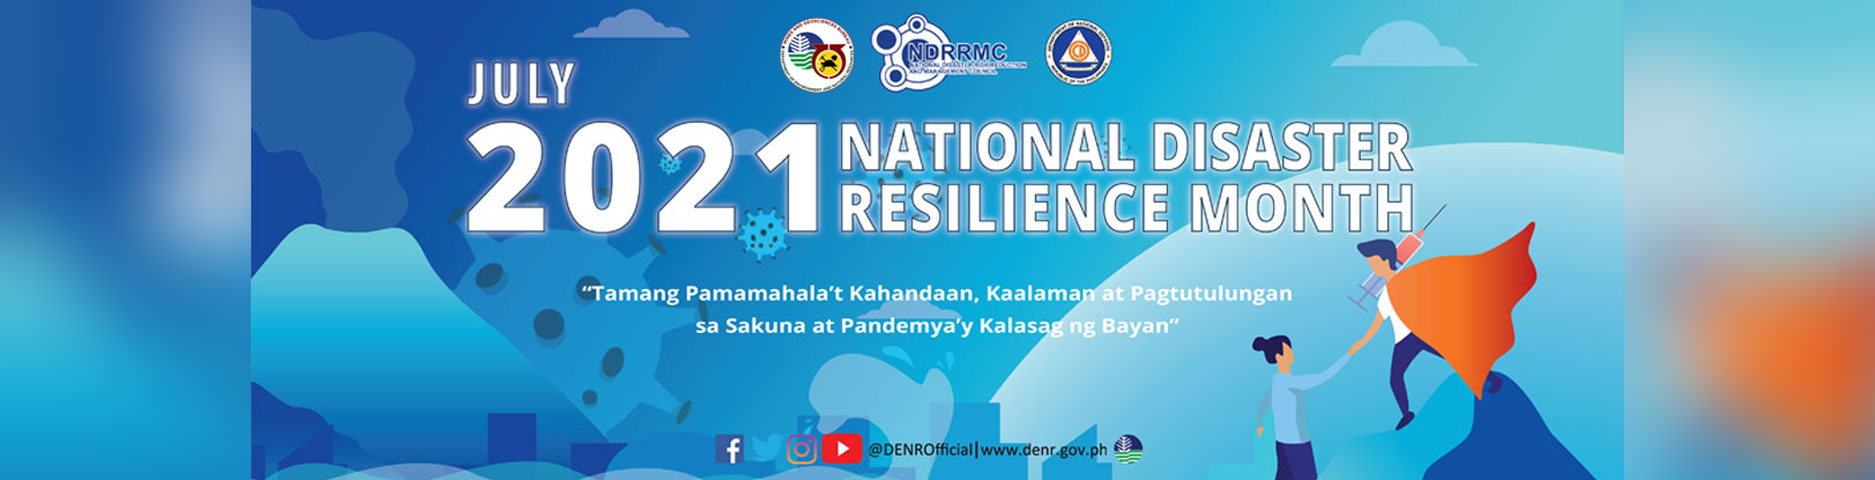 National Disaster Resilience Month July 2021